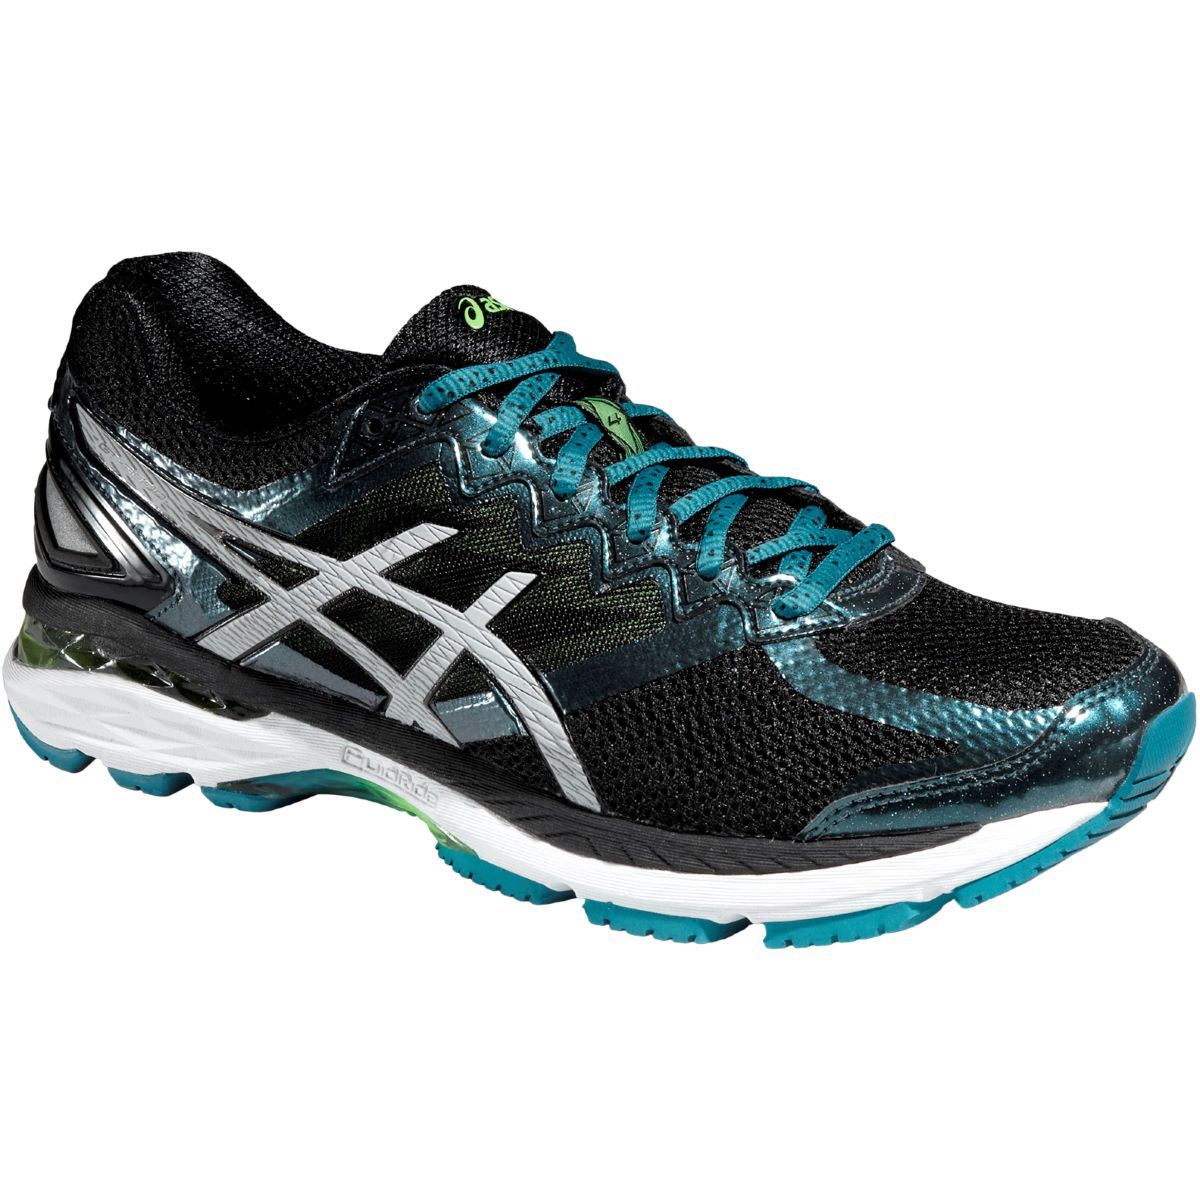 Asics GT 2000 4 Lite Show Shoes (SS16) Stability Running